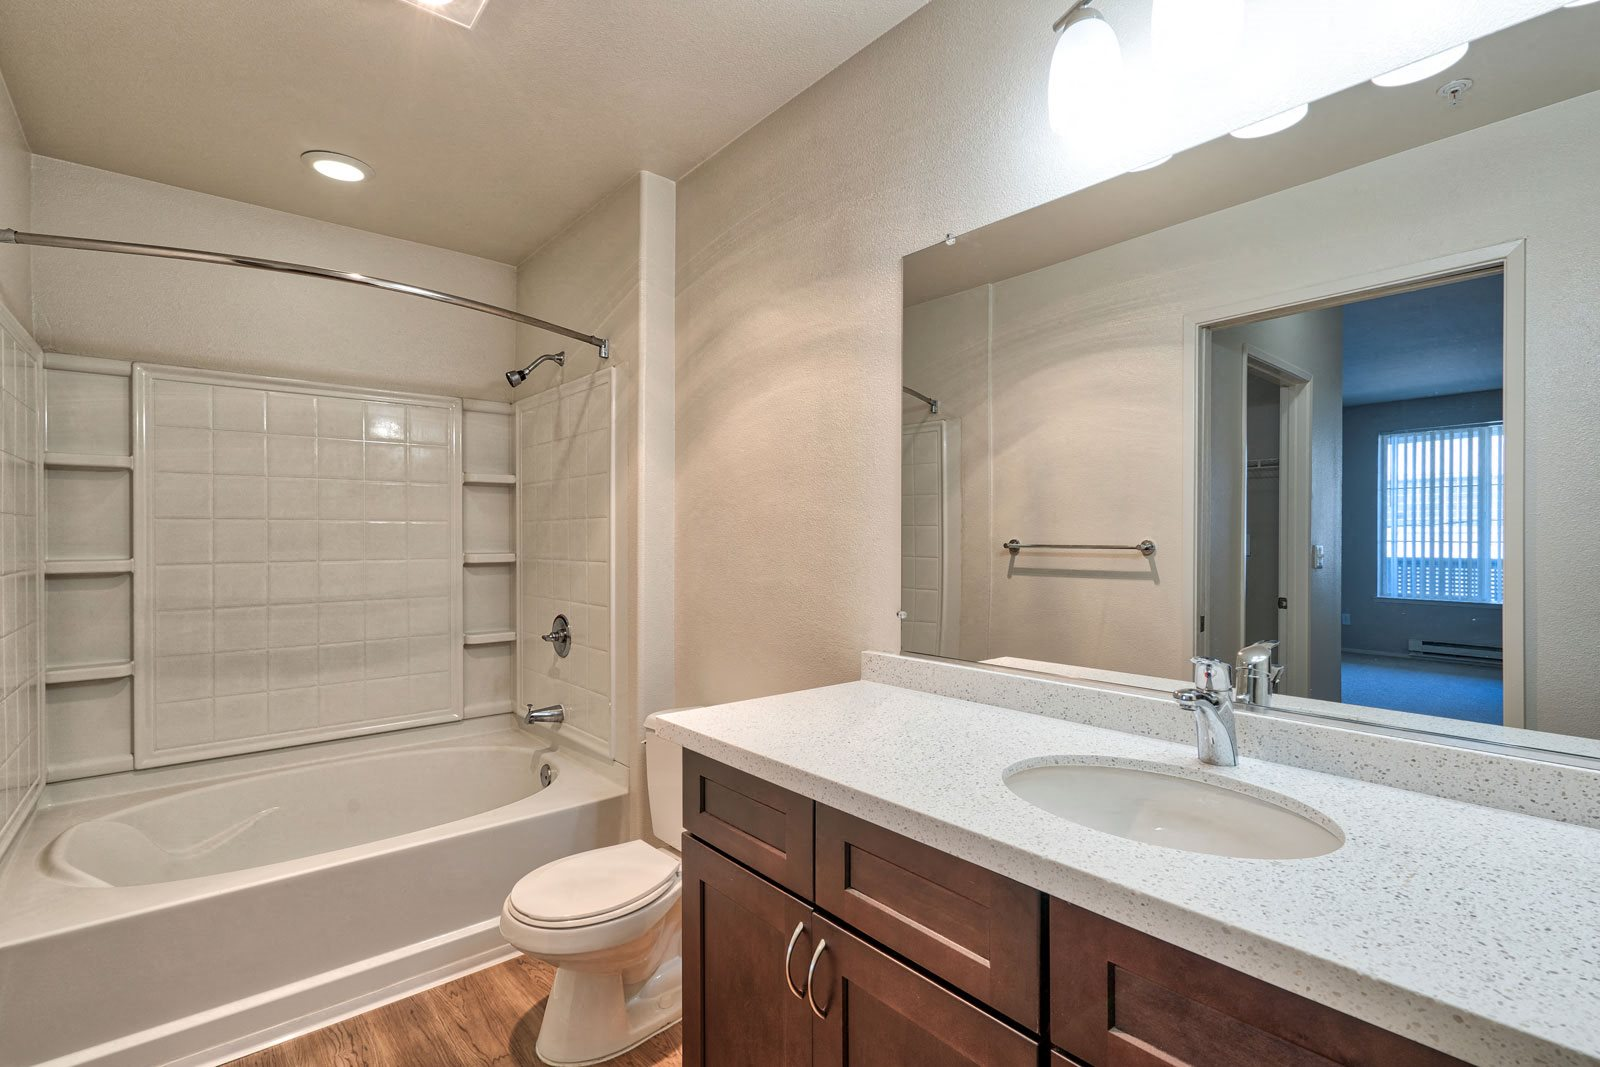 Renovated Bathrooms with Quartz Counters at Allegro at Jack London Square, 94607, CA